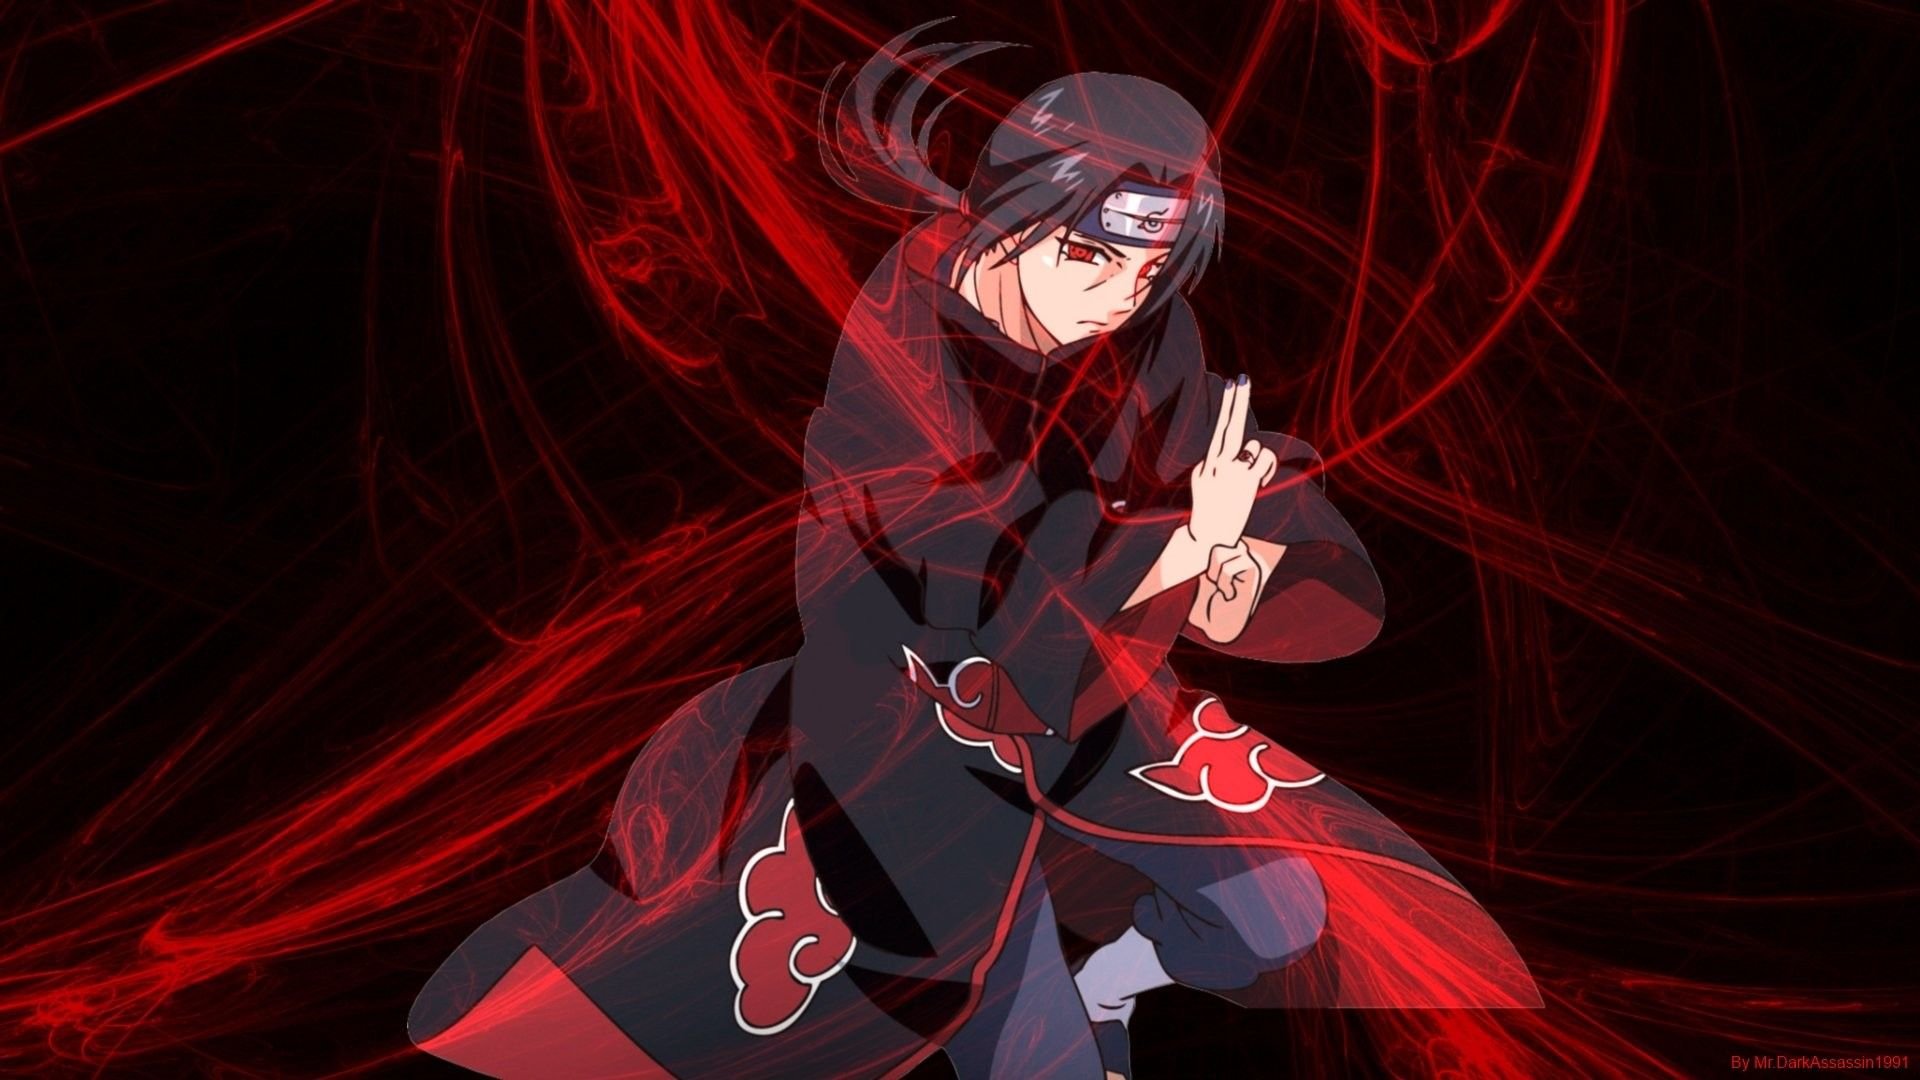 Shisui Uchiha Wallpapers Top Free Shisui Uchiha Backgrounds Wallpaperaccess